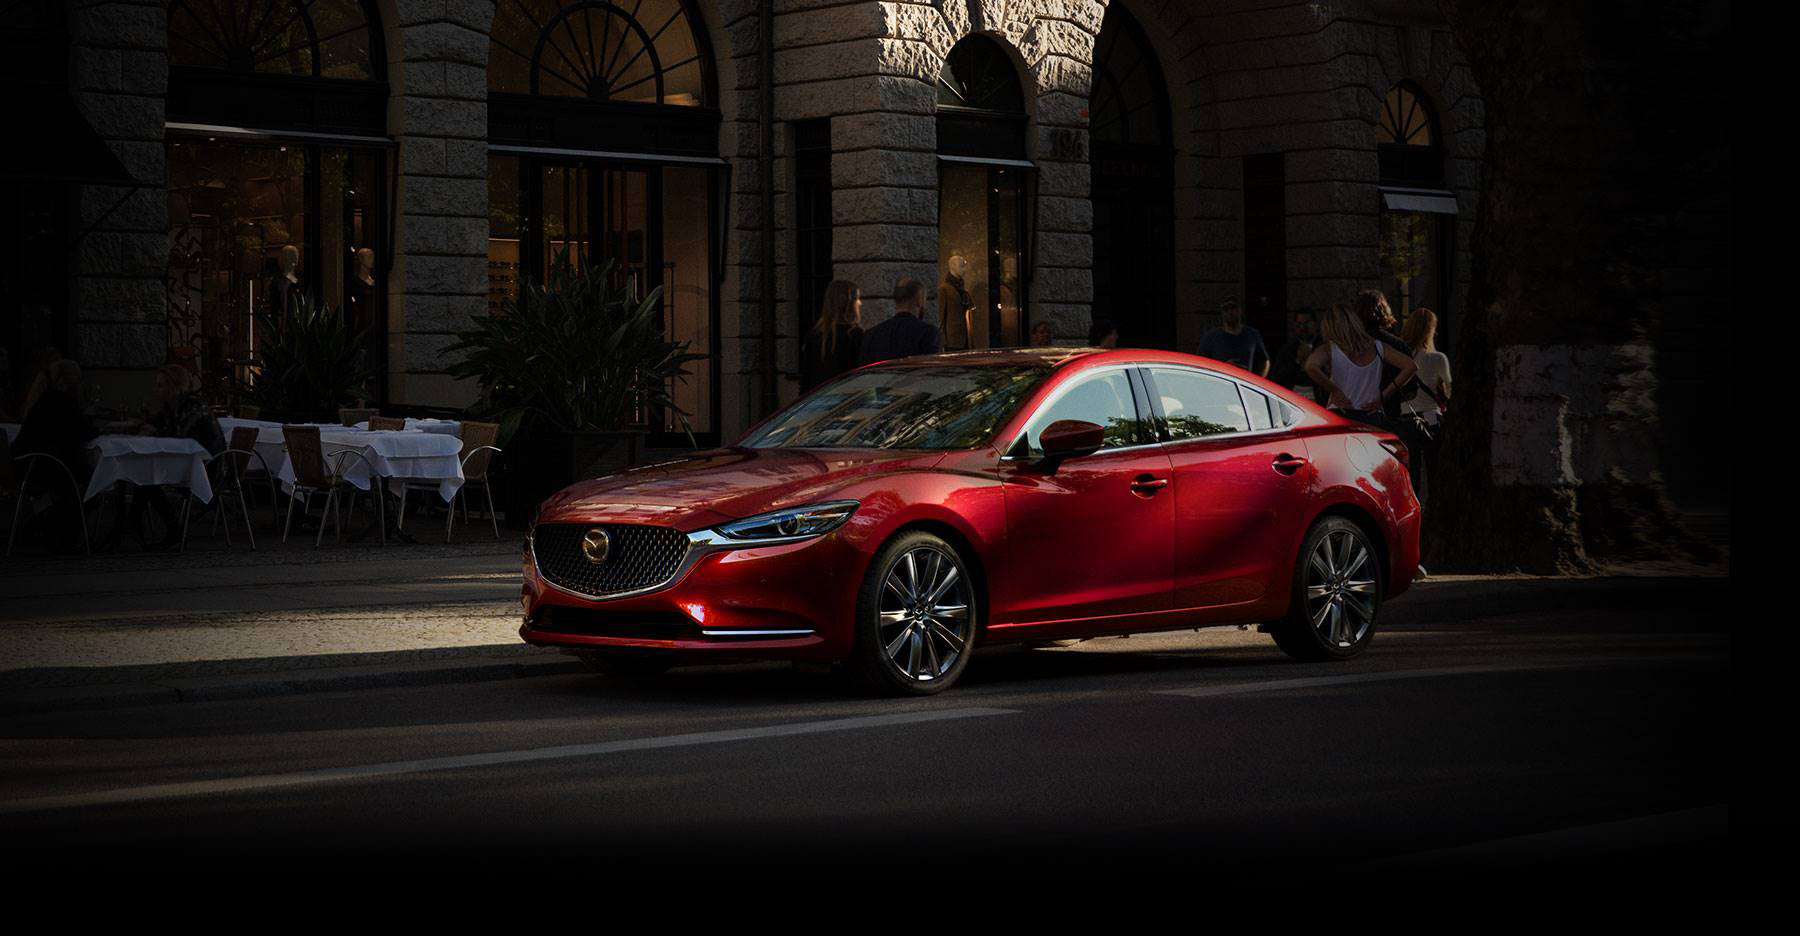 2018 Mazda6, CRAFTED TO INSPIRE. TURBOCHARGED TO DELIVER.